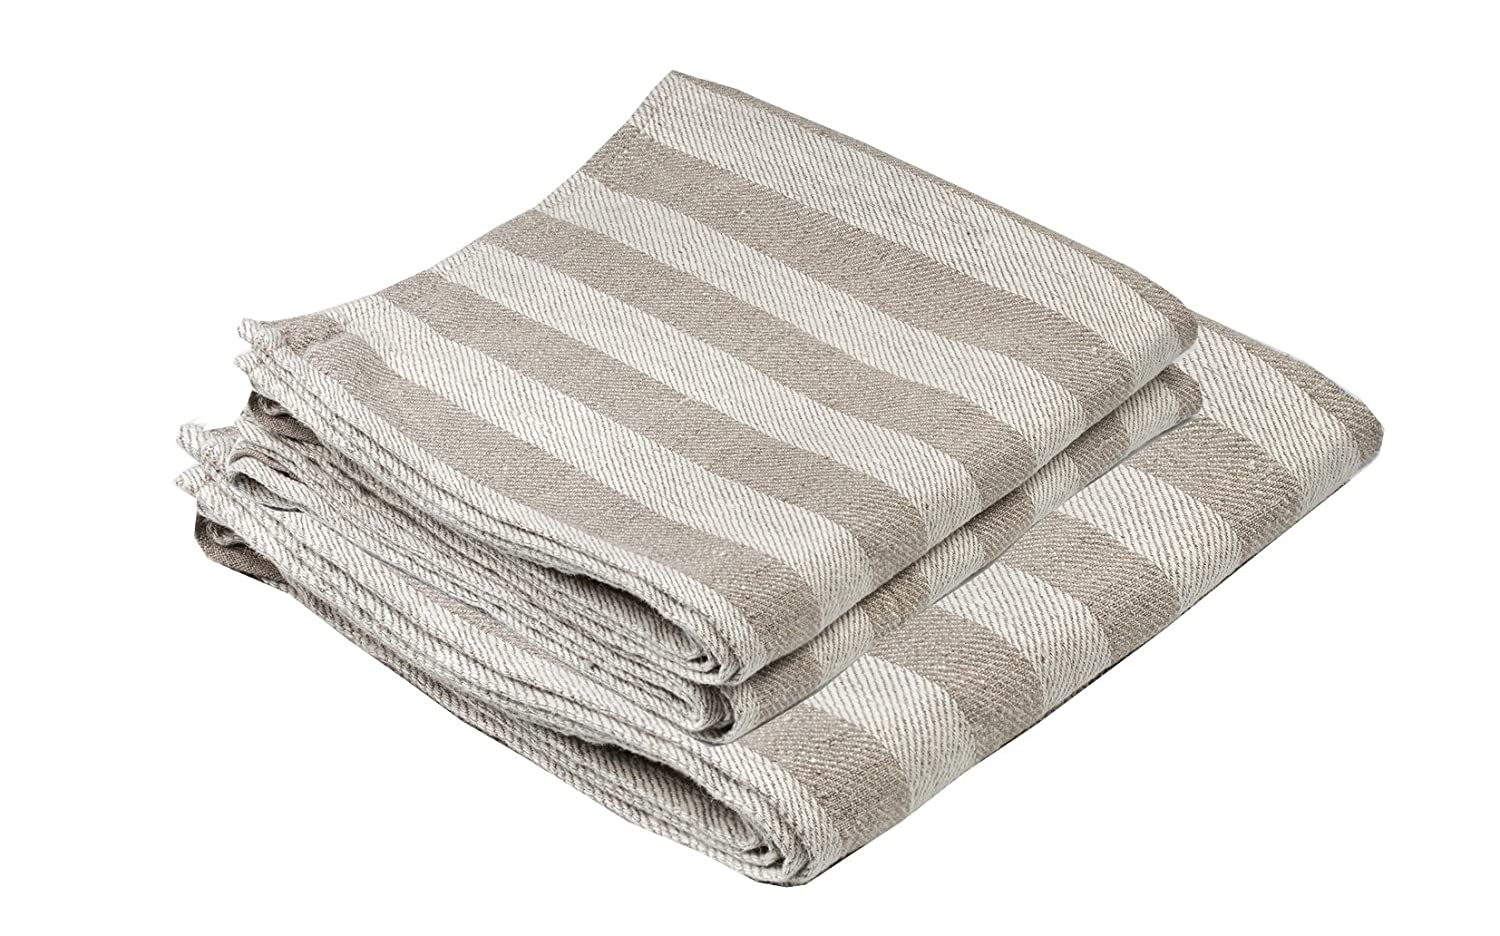 BLESS LINEN Jacquard Striped Pure Linen Towel Set of 3, Grey/White - Includes 1 Large Bath Towel and 2 Hand Towels TS-02003